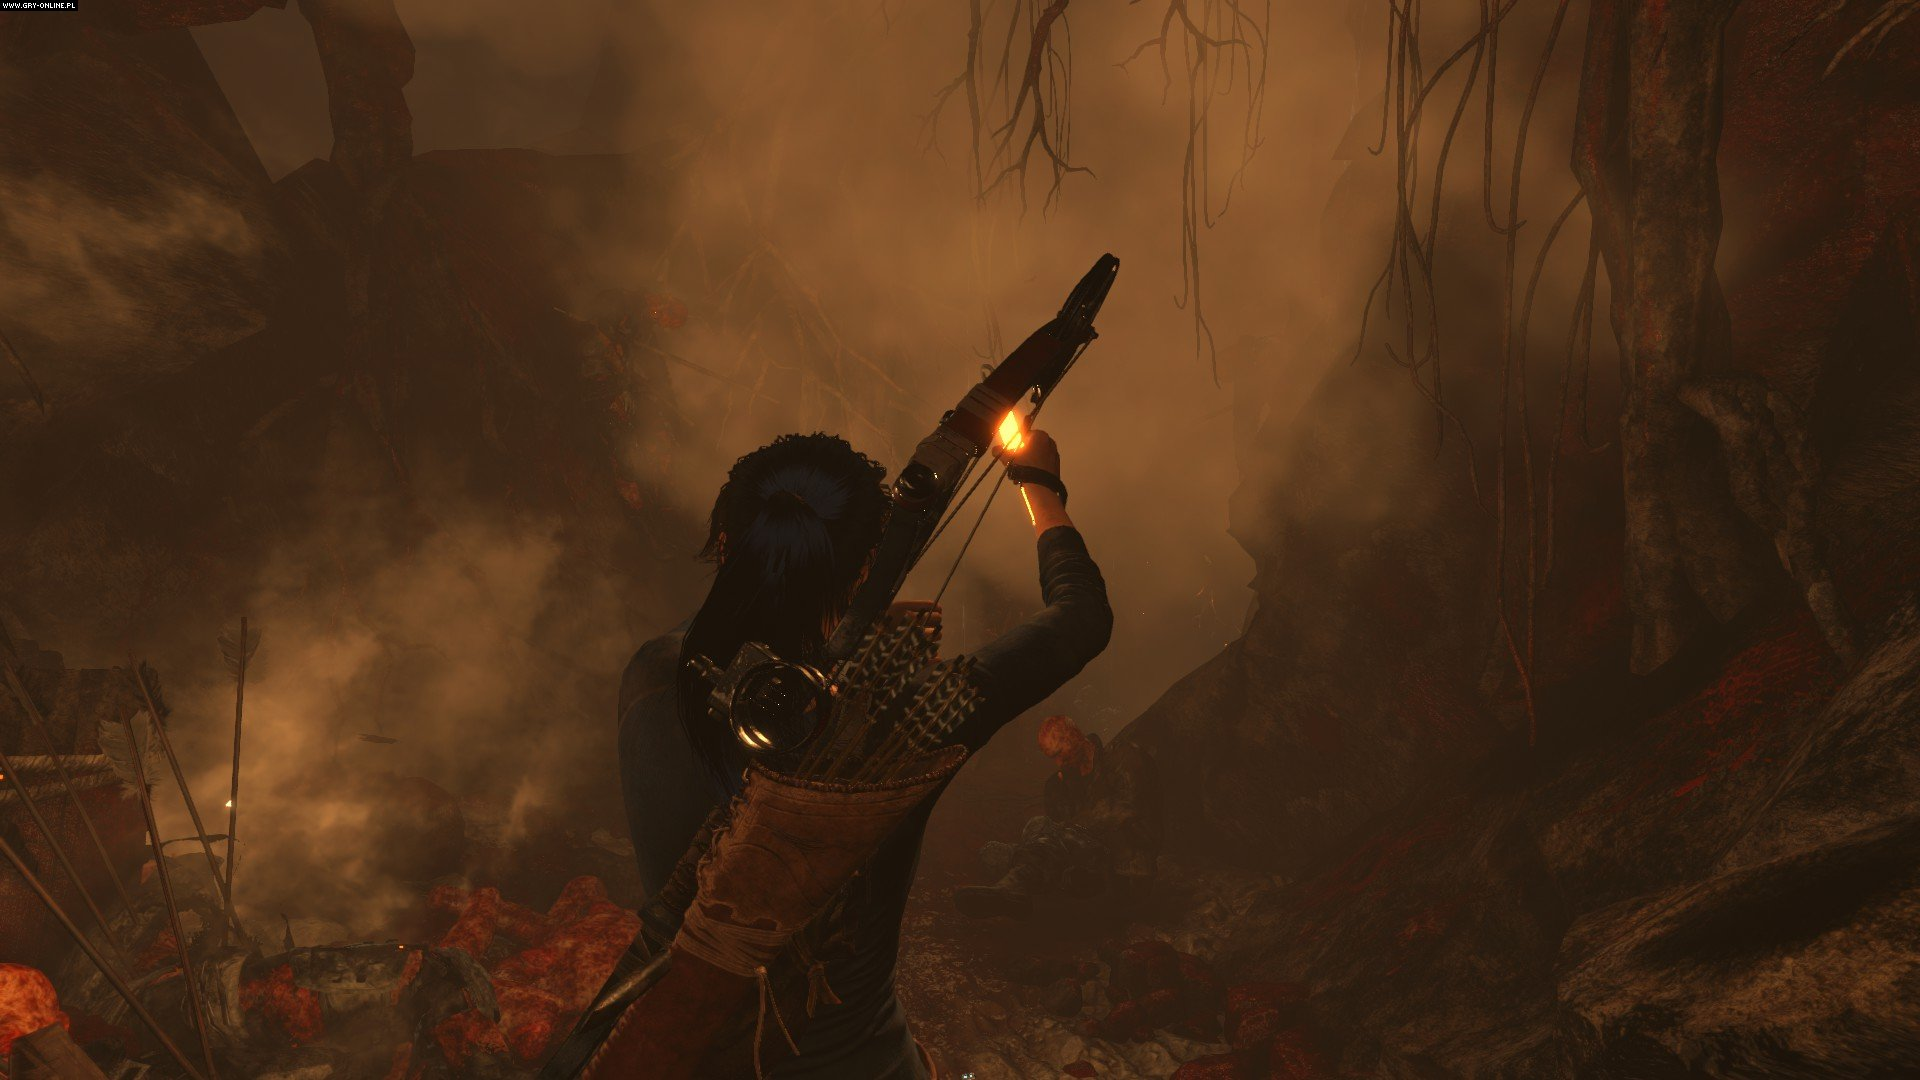 Rise of the Tomb Raider: 20. Rocznica Serii PC, XONE Gry Screen 38/126, Crystal Dynamics, Square-Enix / Eidos